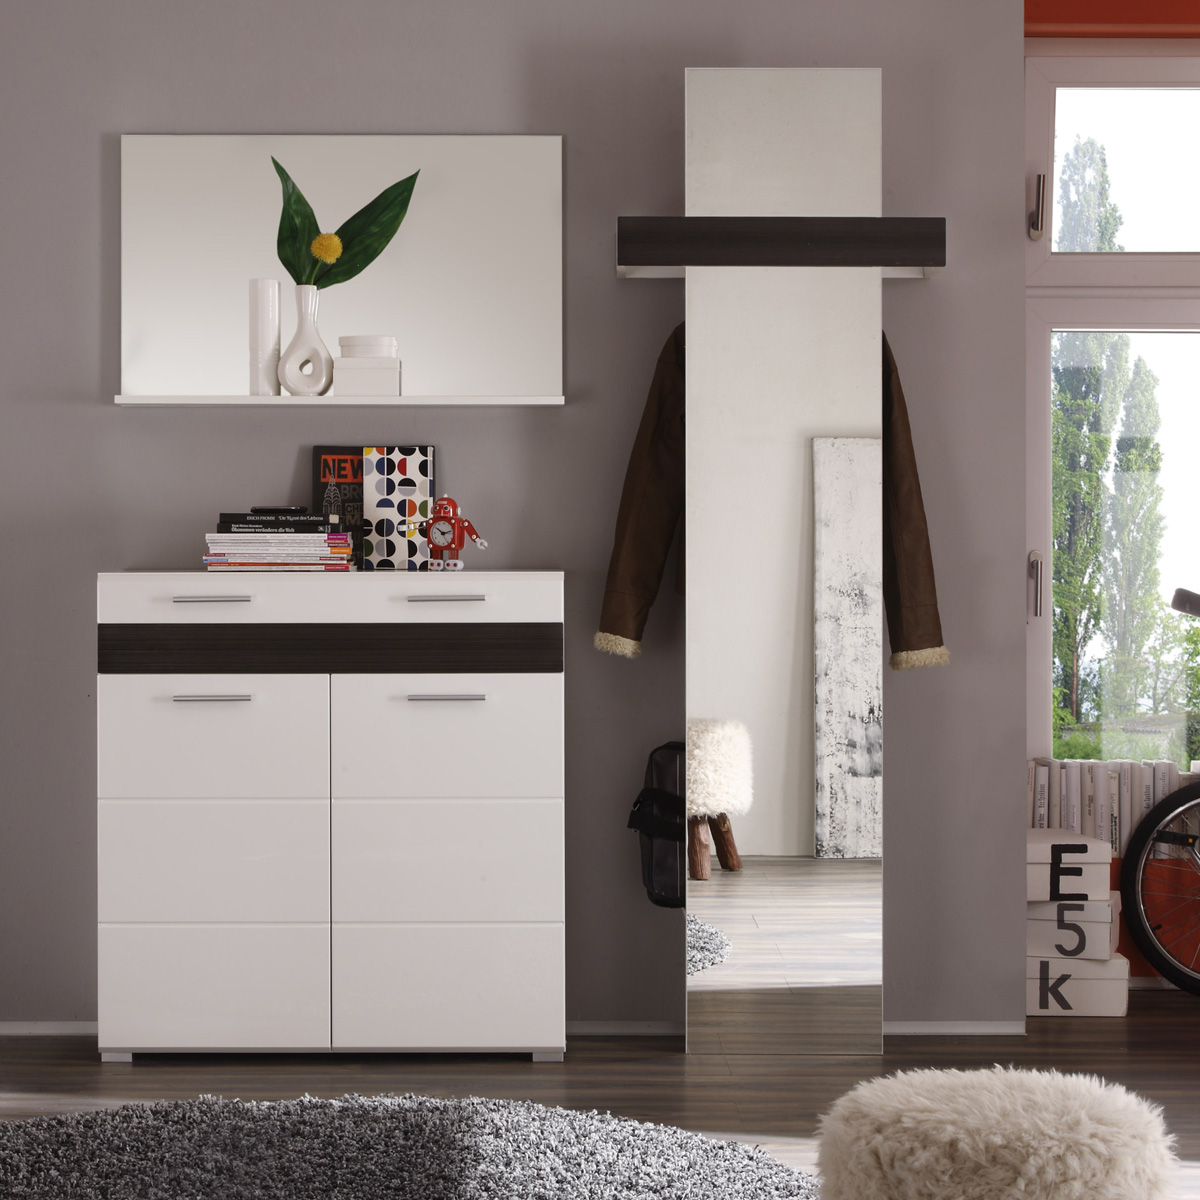 garderobenset ii mezzo garderobe kommode spiegel wei. Black Bedroom Furniture Sets. Home Design Ideas